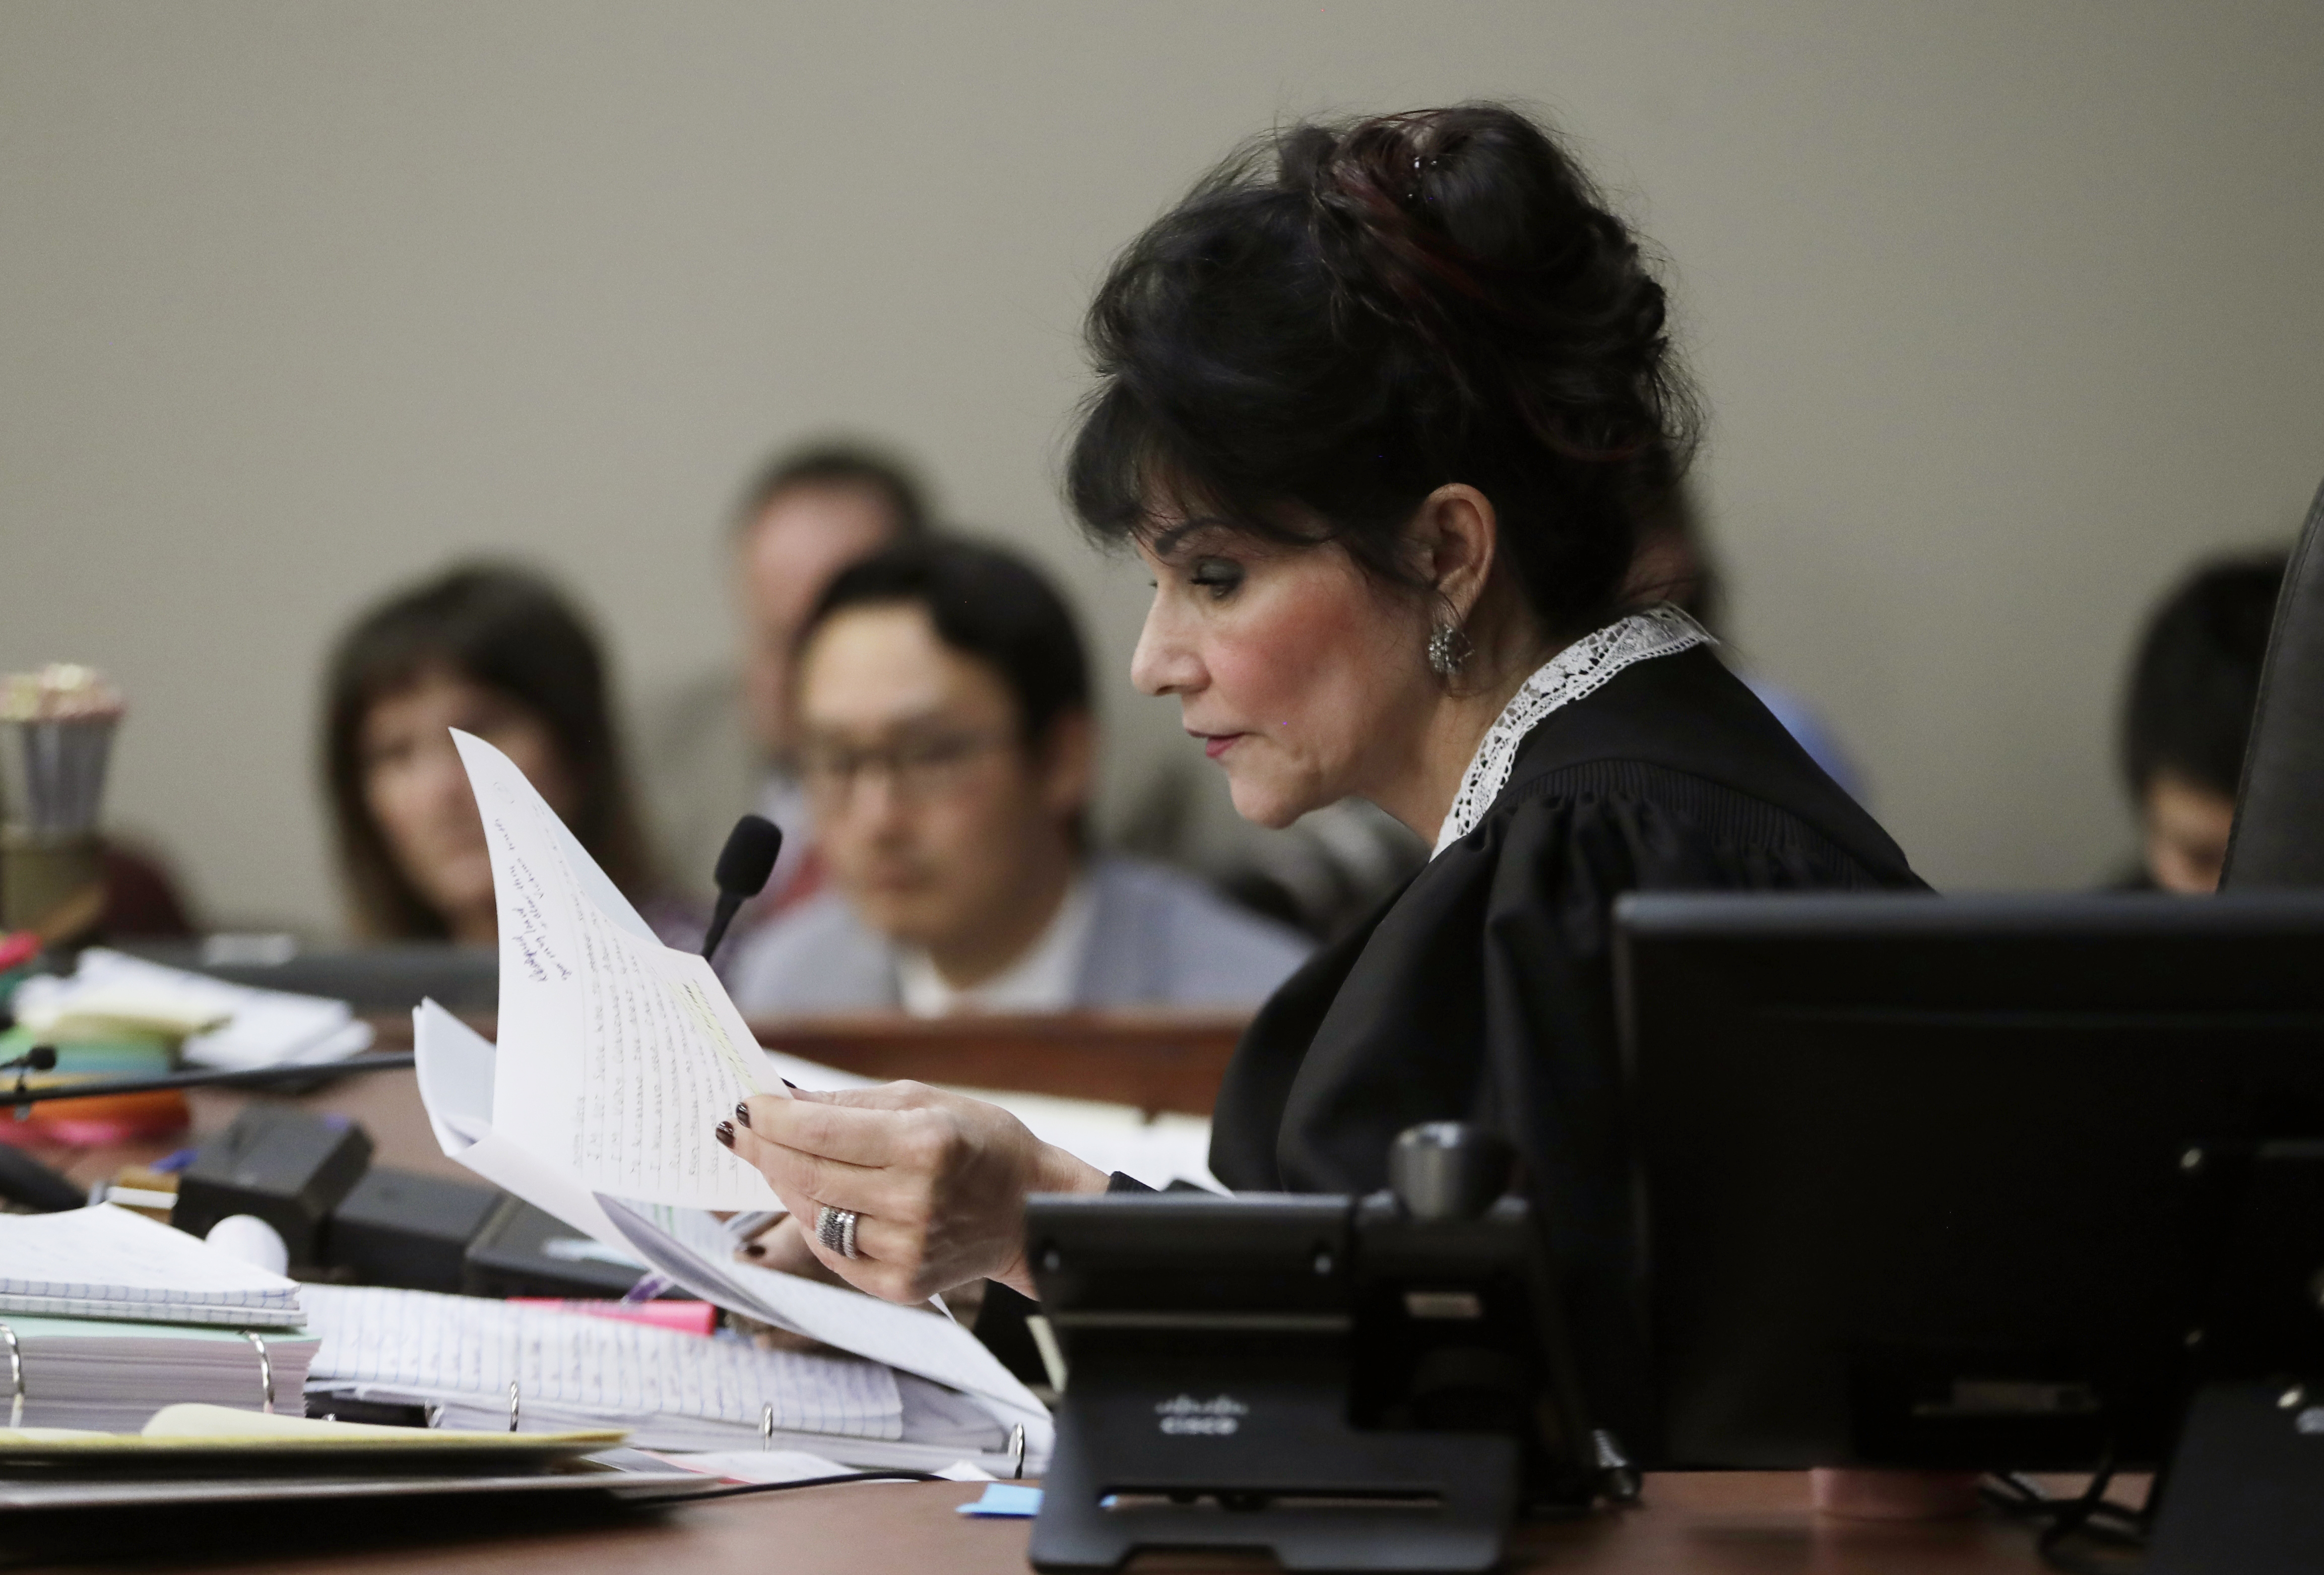 Judge Rosemarie Aquilina reads excerpts from the letter written by Larry Nassar during the seventh day of Nassar's sentencing hearing, Jan. 24, 2018, in Lansing, Mich. The former sports doctor who admitted molesting some of the nation's top gymnasts